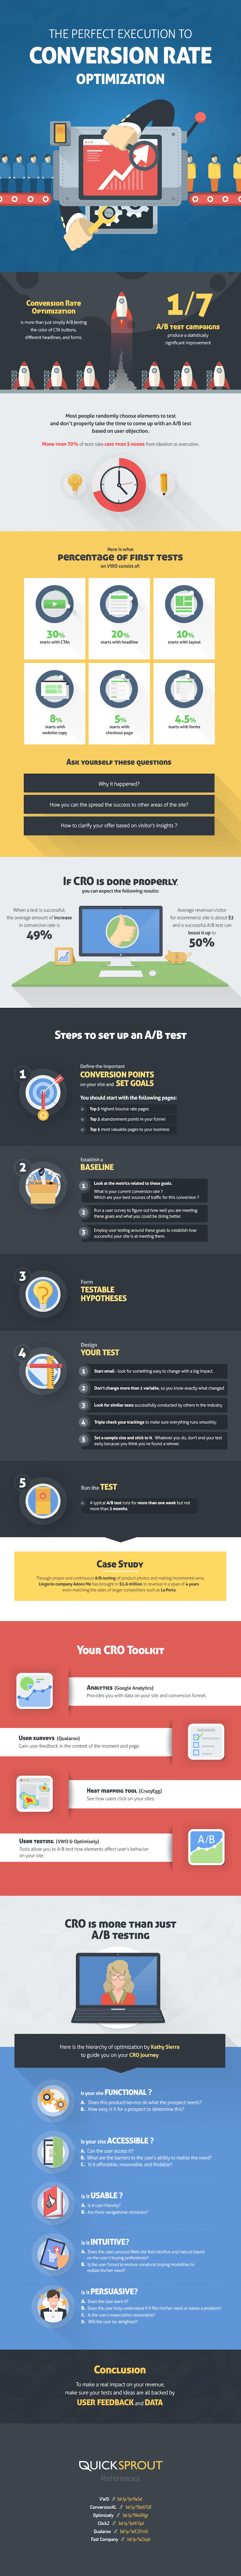 The Perfect Execution of Conversion Rate Optimization - #infographic